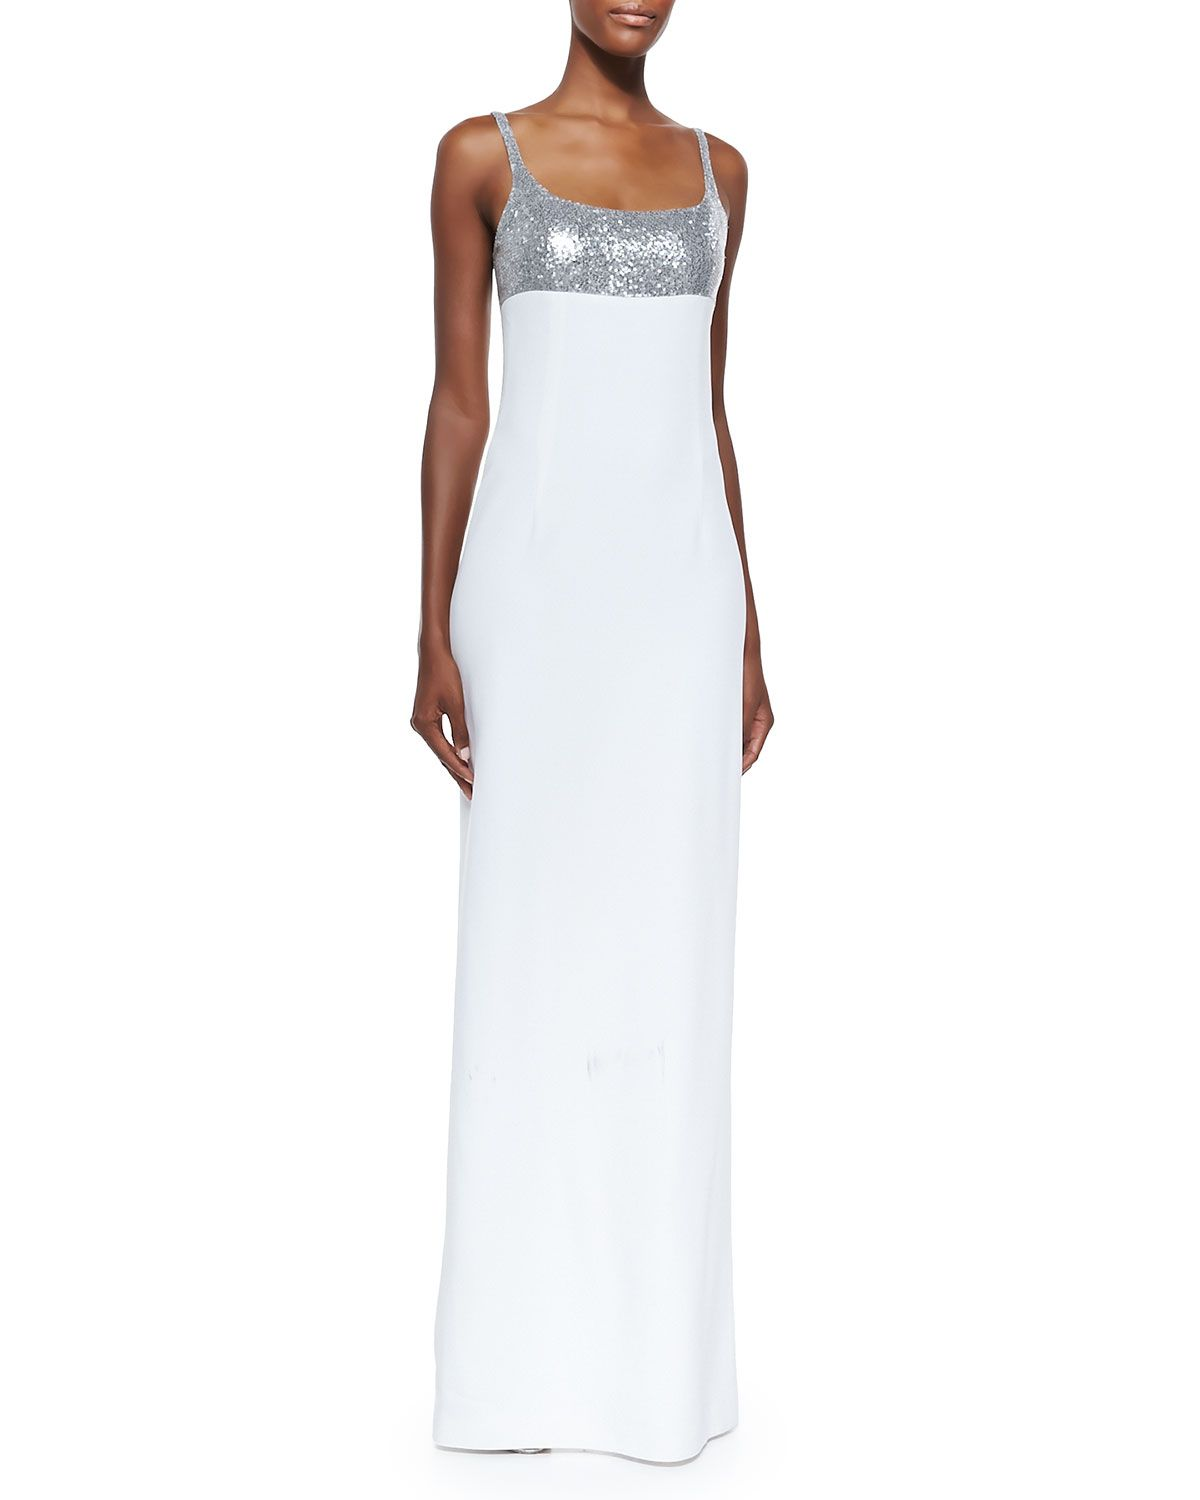 Michael Kors Sequined Tank Gown, Silver/White | ADDTL COOL PICS ...